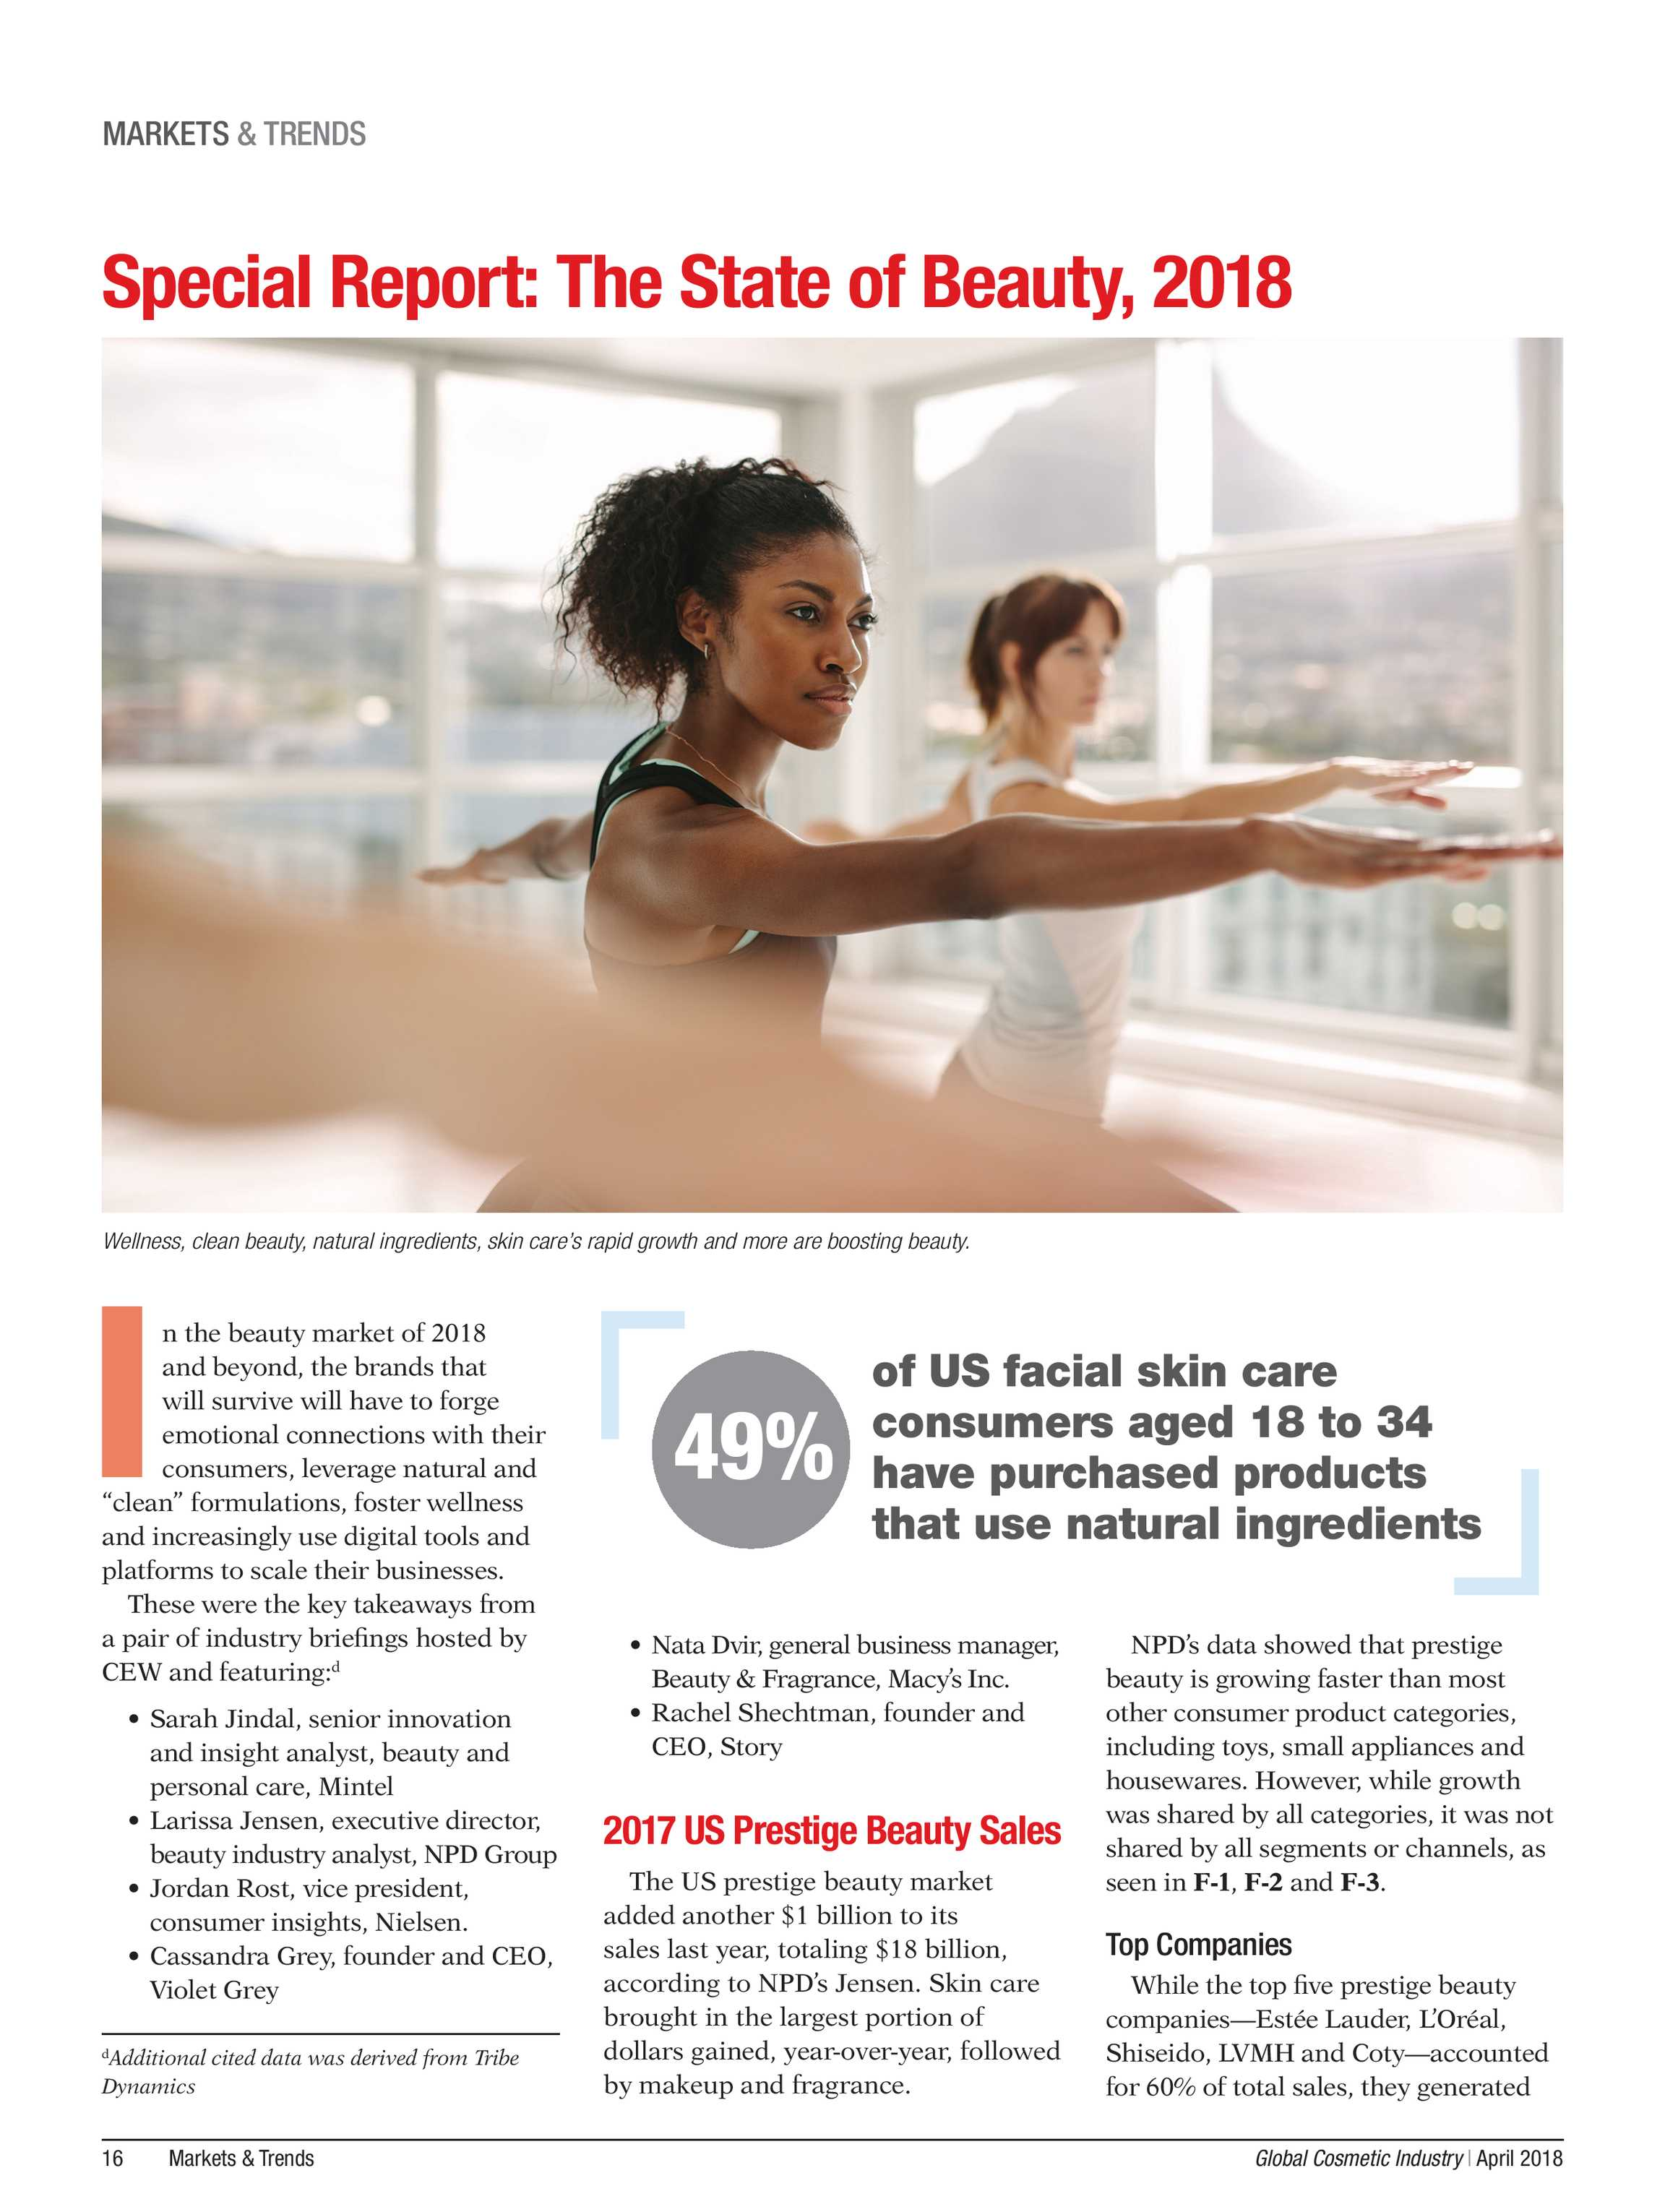 Global Cosmetic Industry Magazine - page 16